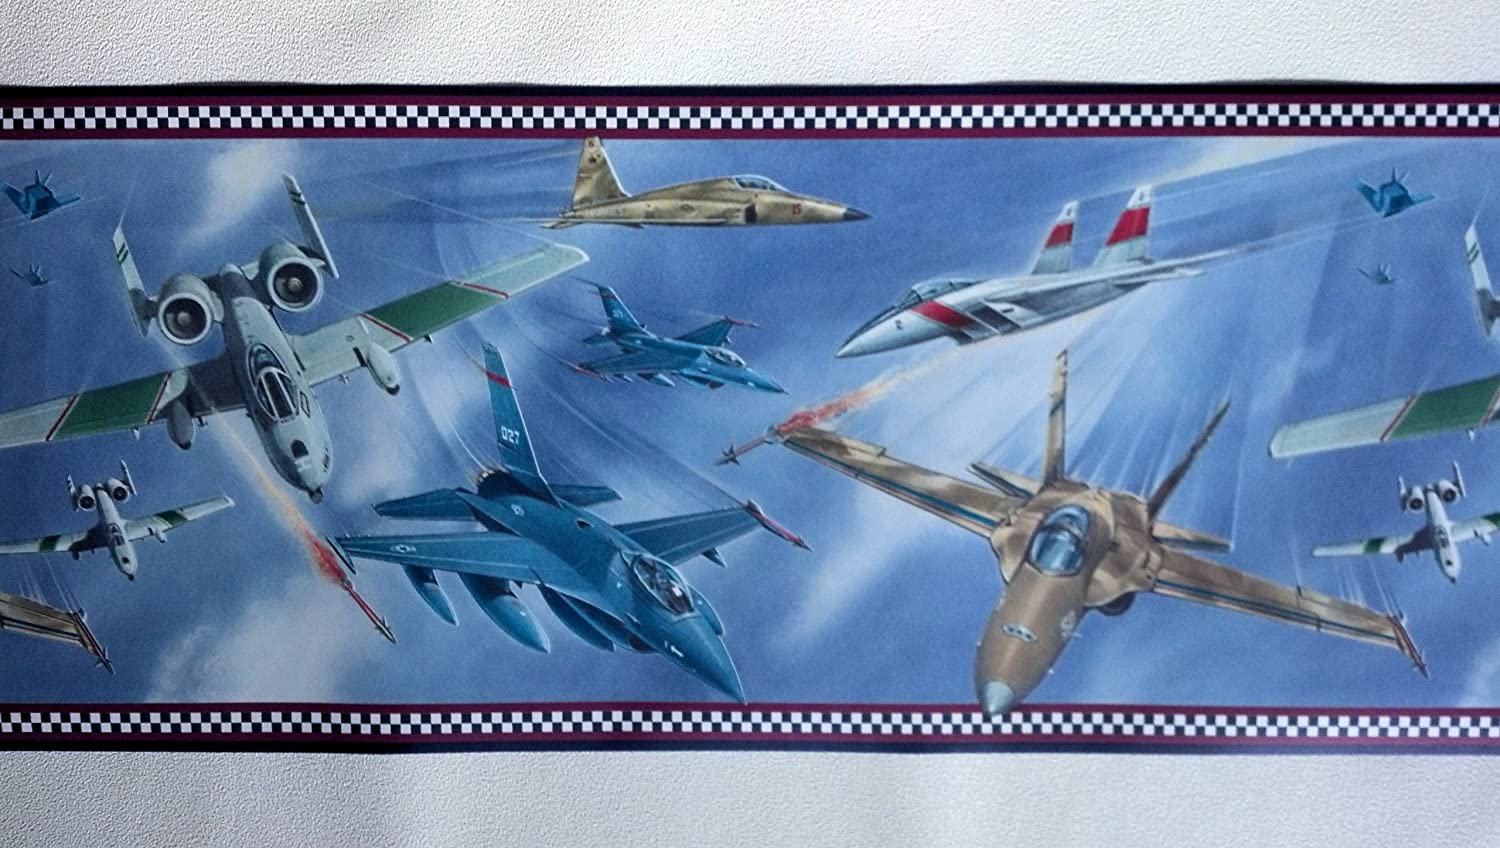 Military Jets Wallpaper Border - Air Force... - - Amazon.com